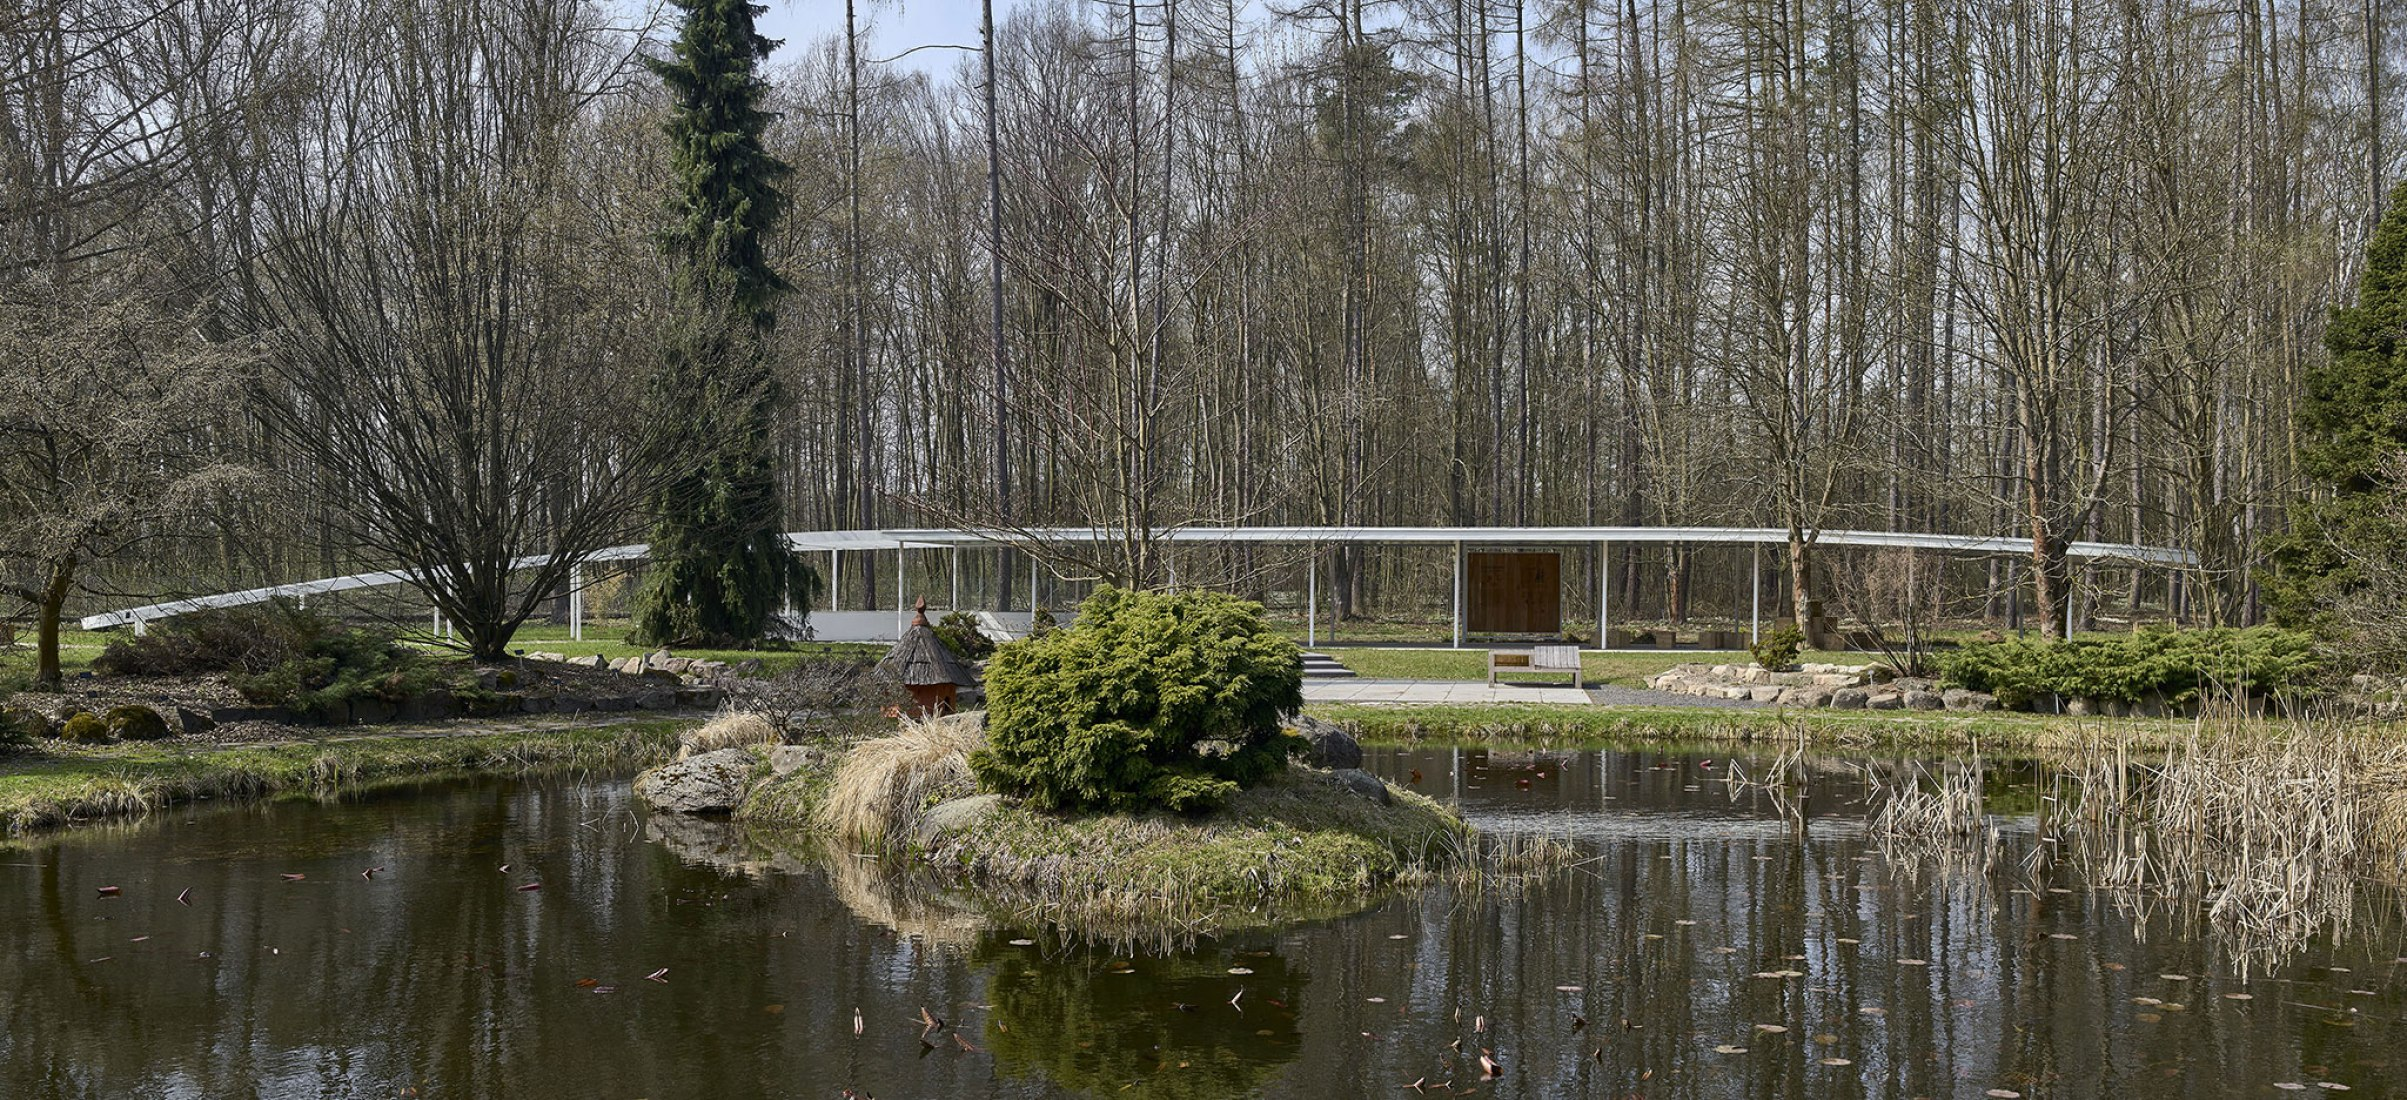 World's vanishing plants garden and Educational Pavilion by JRK72. Photograph by Jakub Certowicz